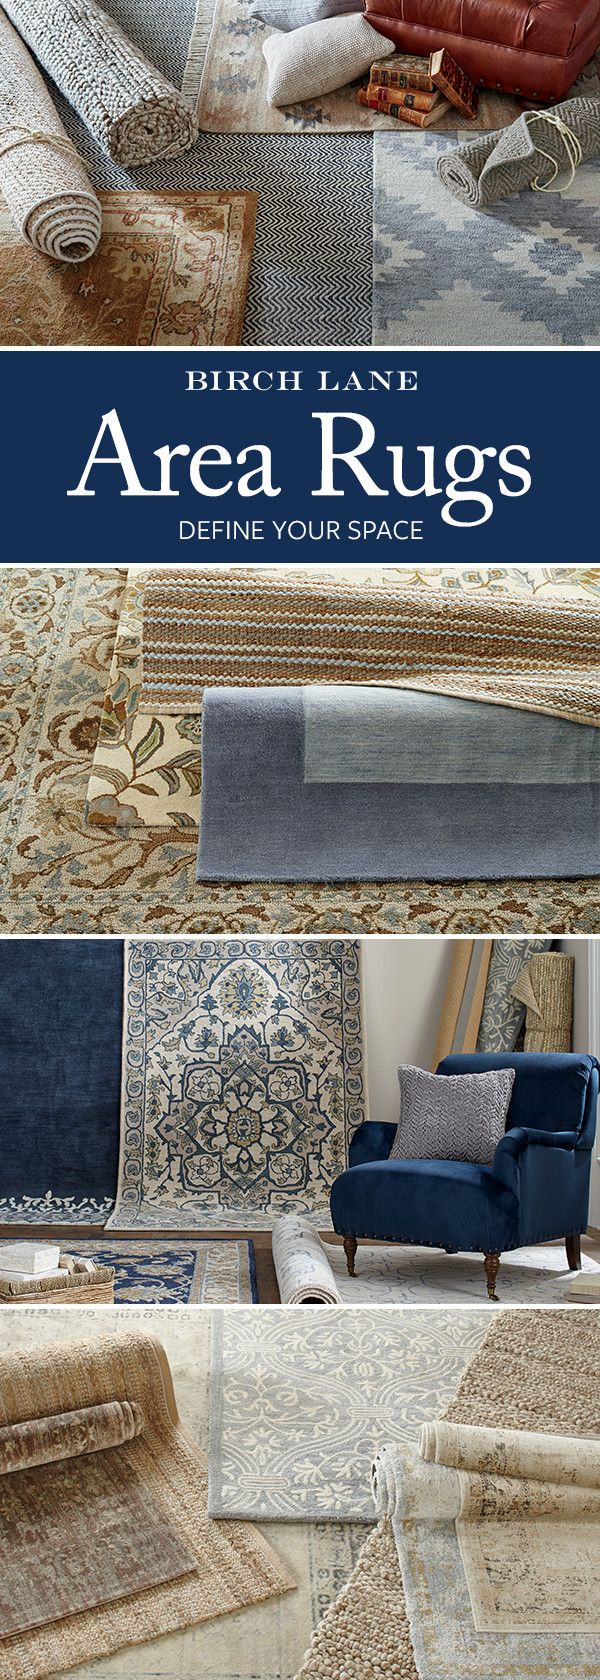 If you're looking for a way to add pattern, color, or texture to your space, the answer could be right under your feet. Shop Birch Lane's selection of rugs to find the perfect option and unroll a whole new look. Sign up and learn more. Don't forget: orders $49 and over always ship free.